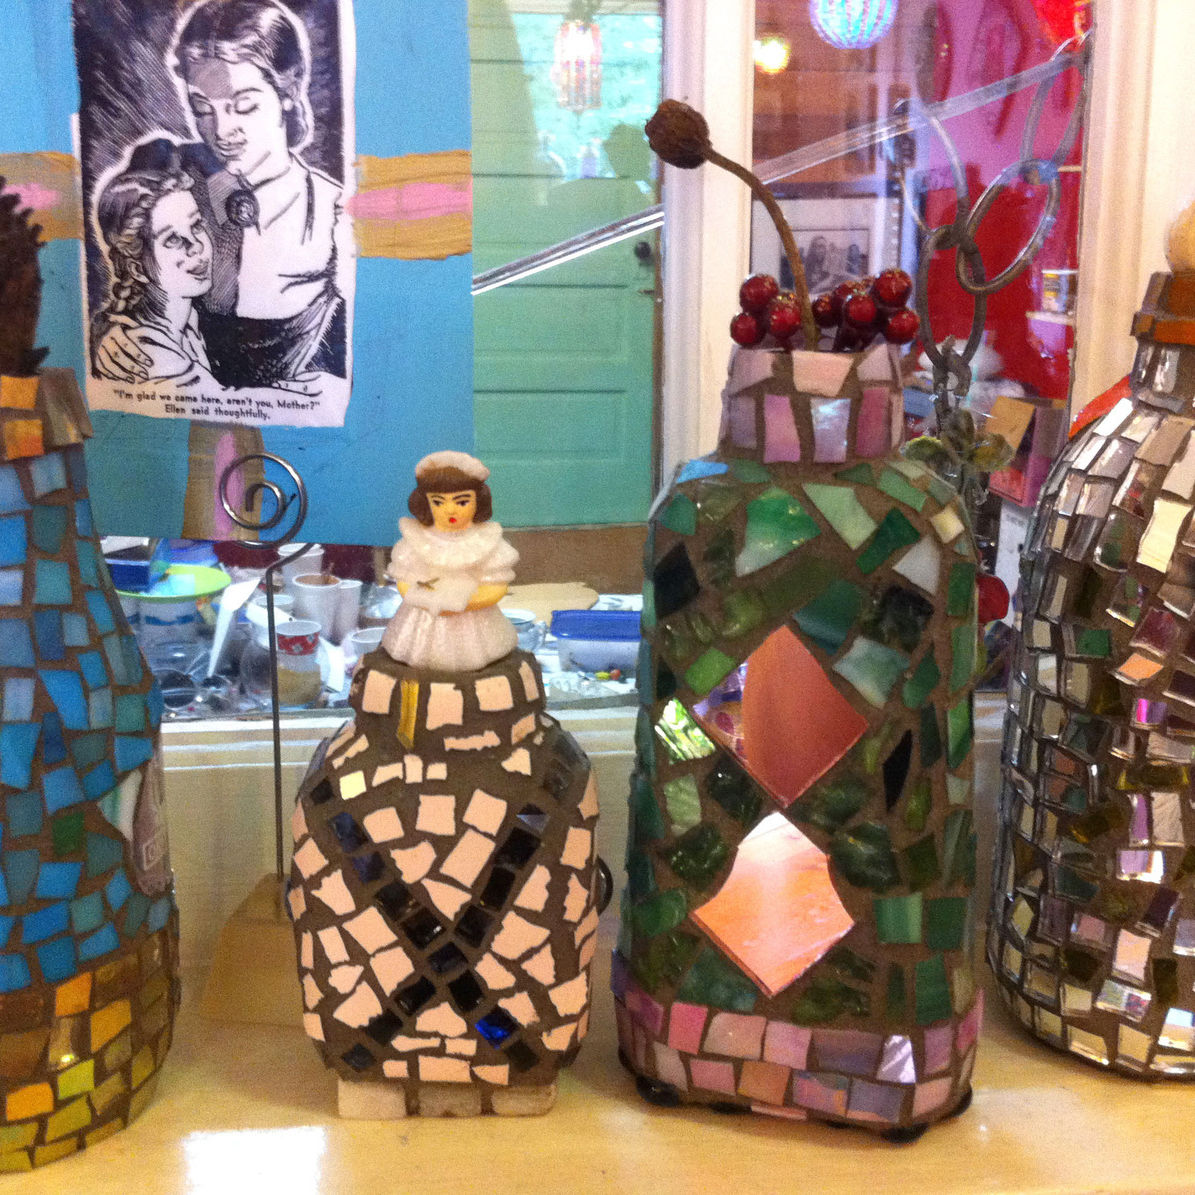 Mosaic jars with doll ddyayu